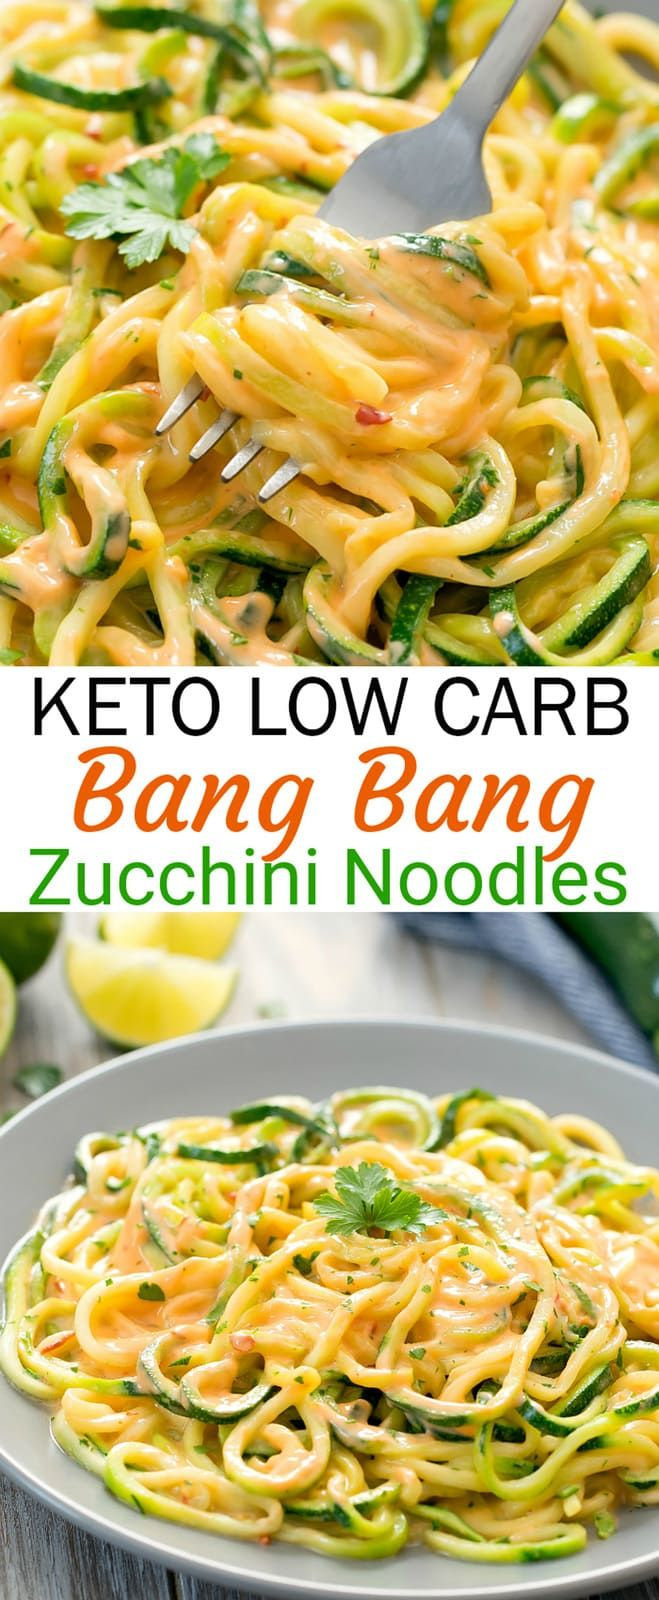 Keto Bang Bang Zucchini Noodles. Zucchini noodles are tossed in a low carb version of bang bang sau